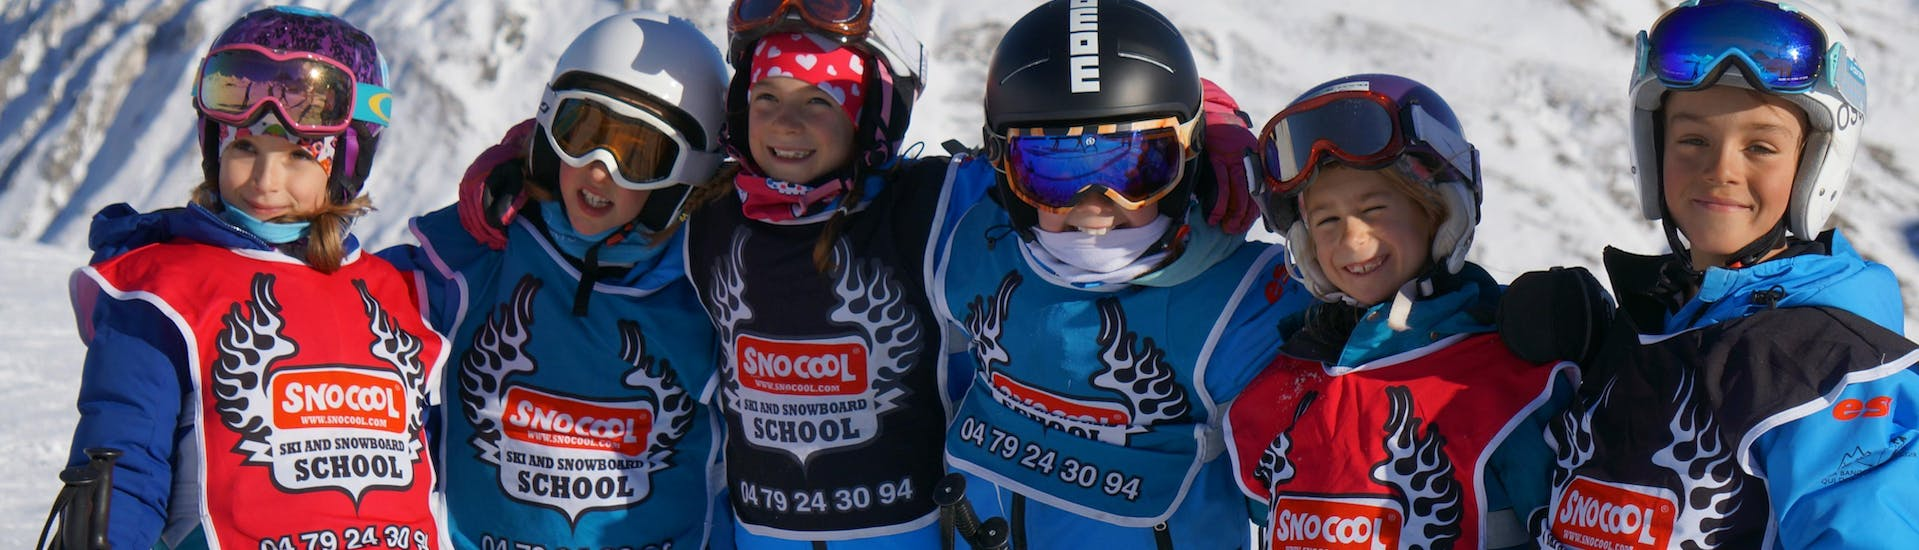 "A group of young skiers are standing in line while smiling at the camera in front of a snowy mountain during their Kids Ski Lessons ""Small Group"" (5-12 years) - All Levels with the ski school Snocool."